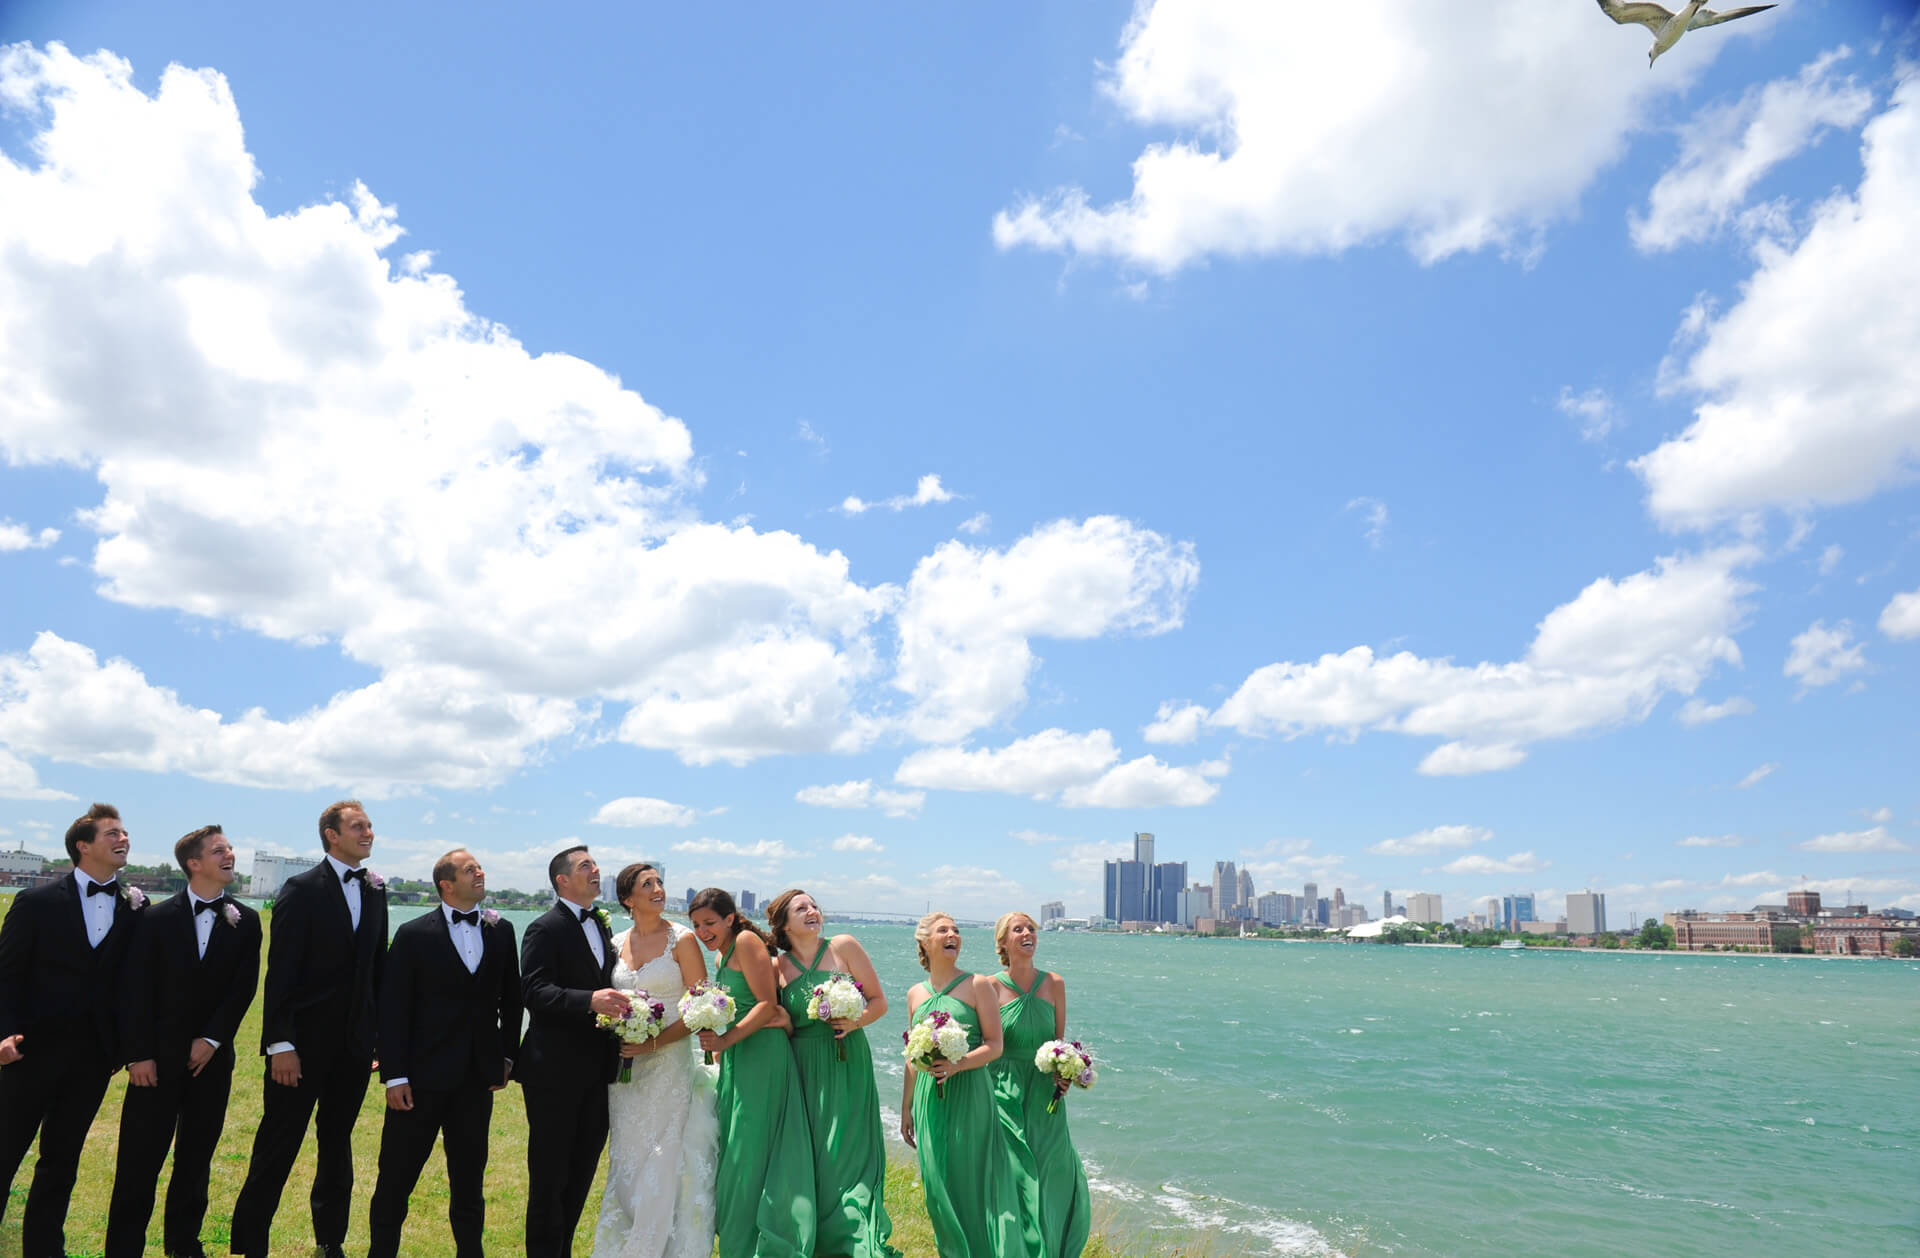 Documentary wedding photo of the wedding party about to get pooped on my a seagull in Detroit, Michigan.